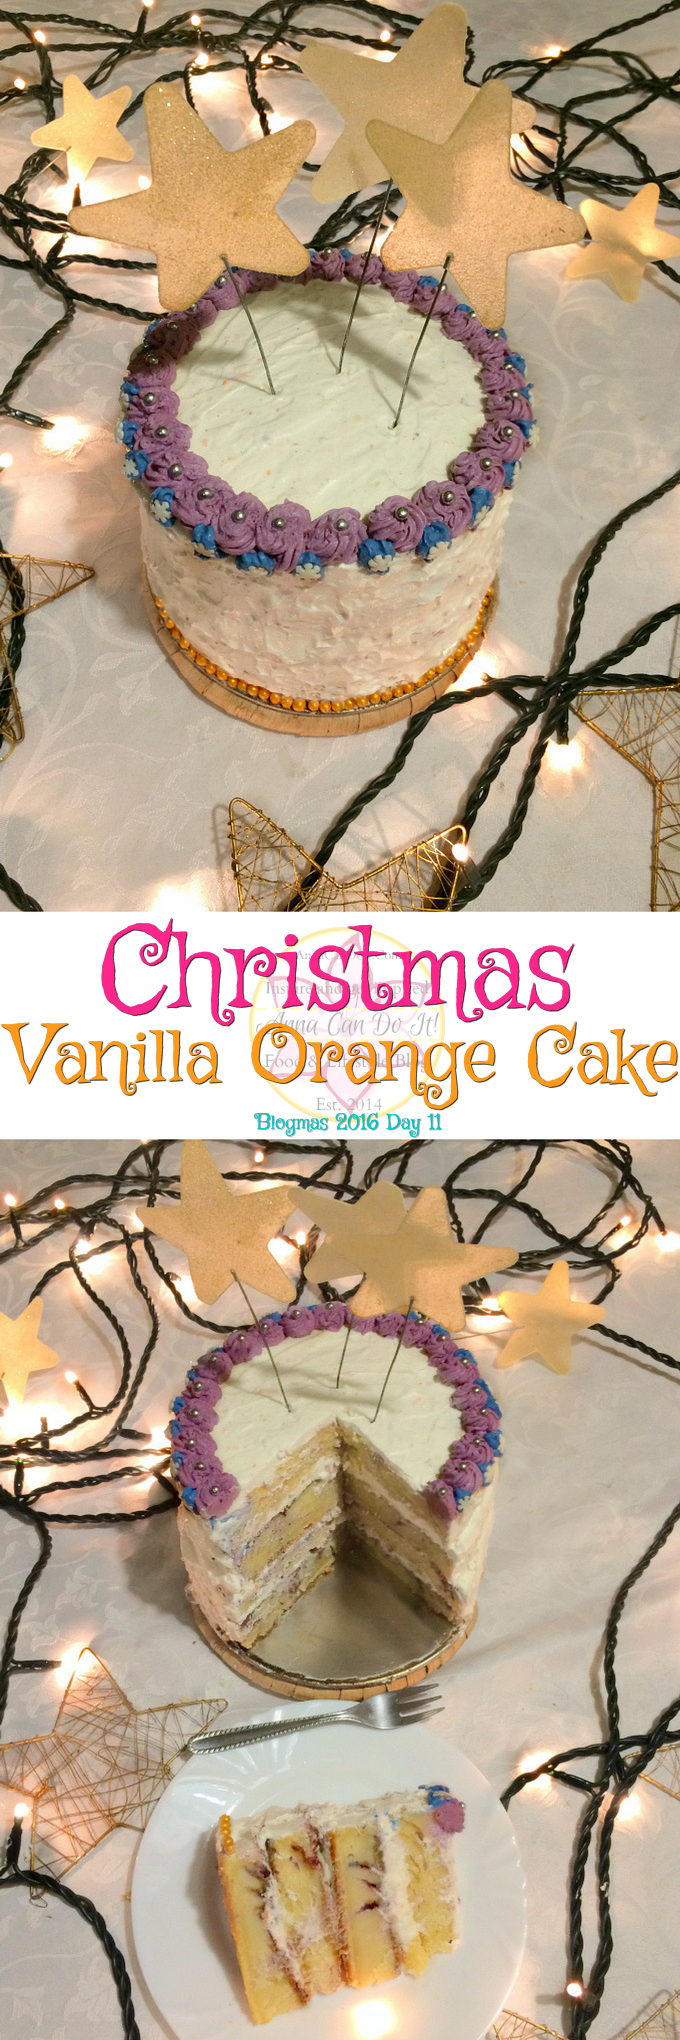 Blogmas 2016 Day 11 - Christmas Vanilla Orange Cake - Anna Can Do It! - This festive Christmas Vanilla Orange Cake will enrich your Christmas fiest! This cake is full of flavores starts from vanialla to orange, spiced up with blackberry jam.